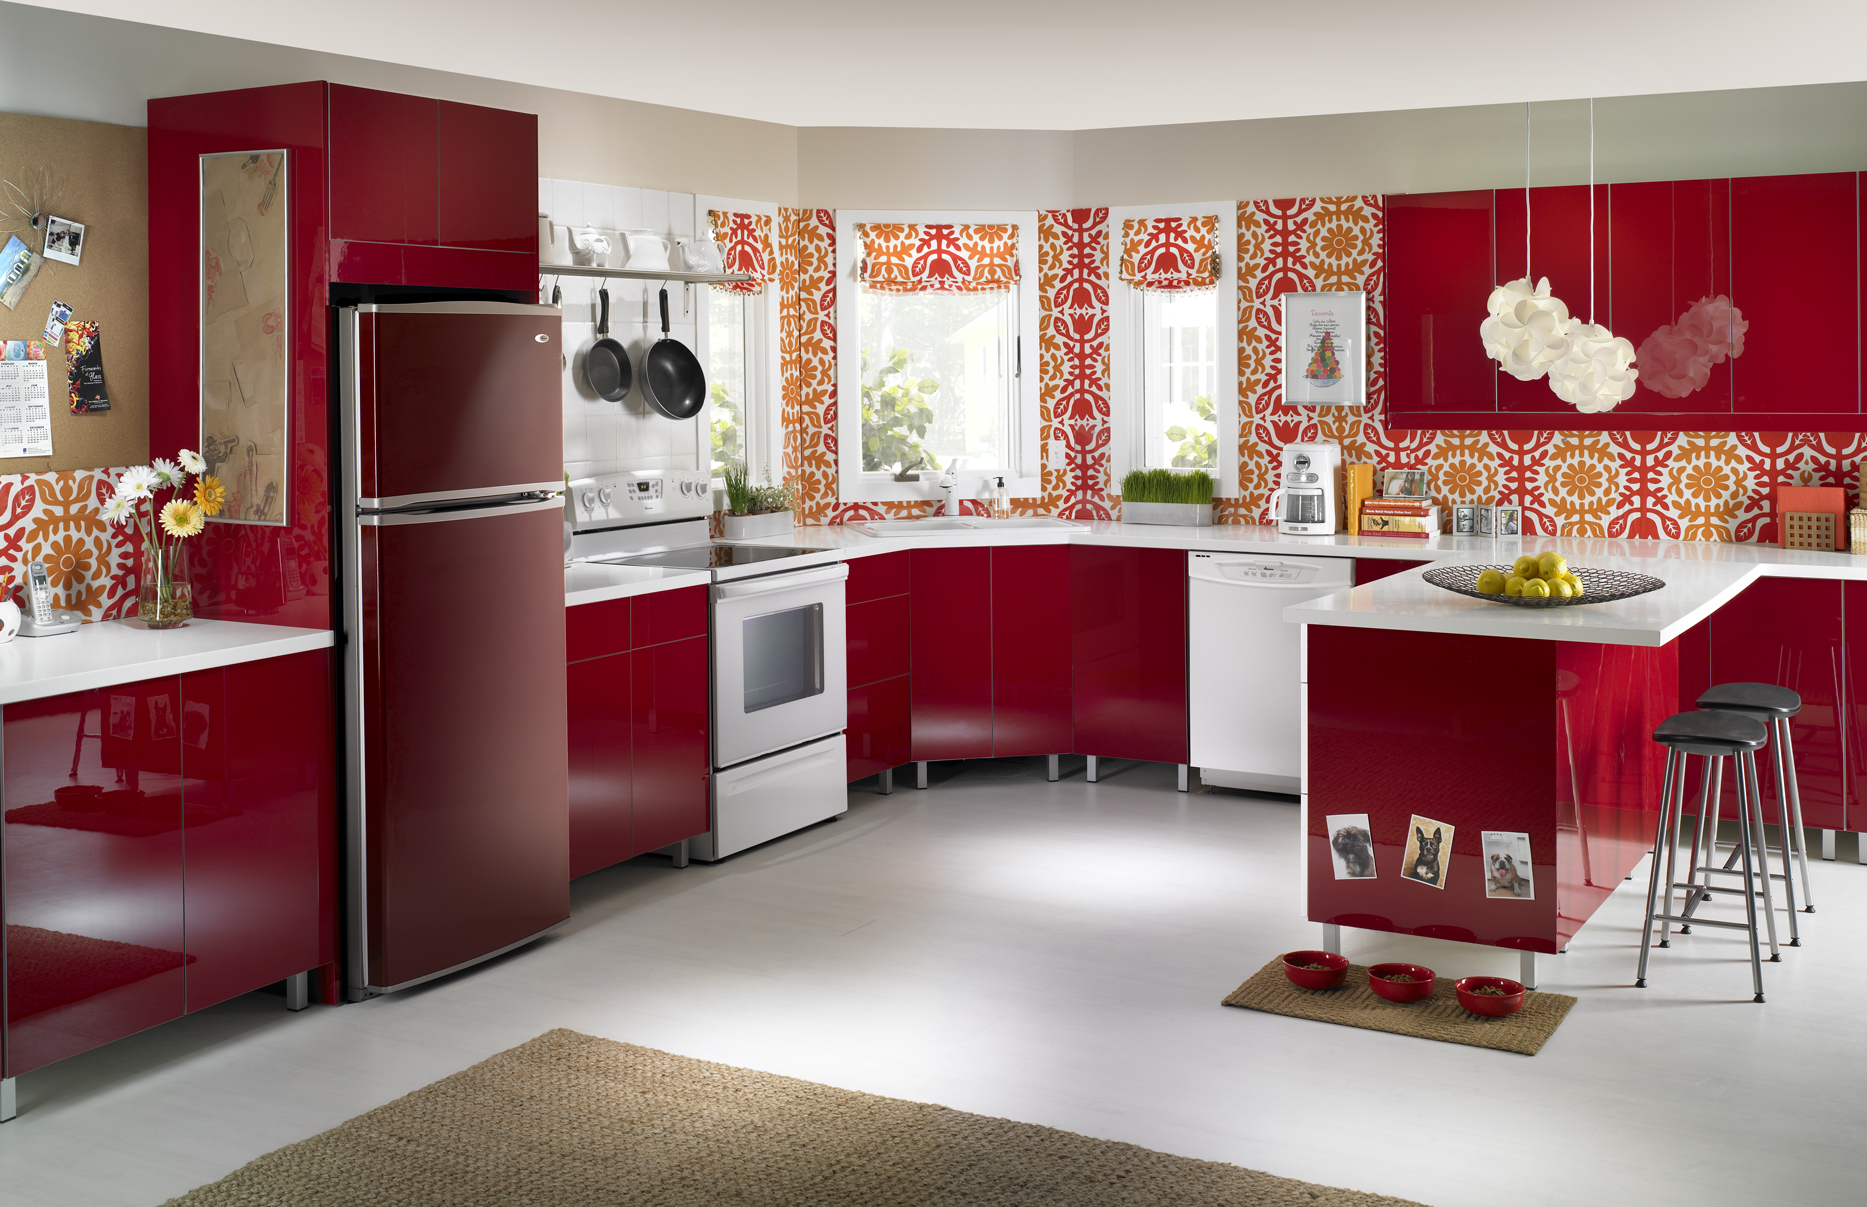 Red refrigerator in red kitchen